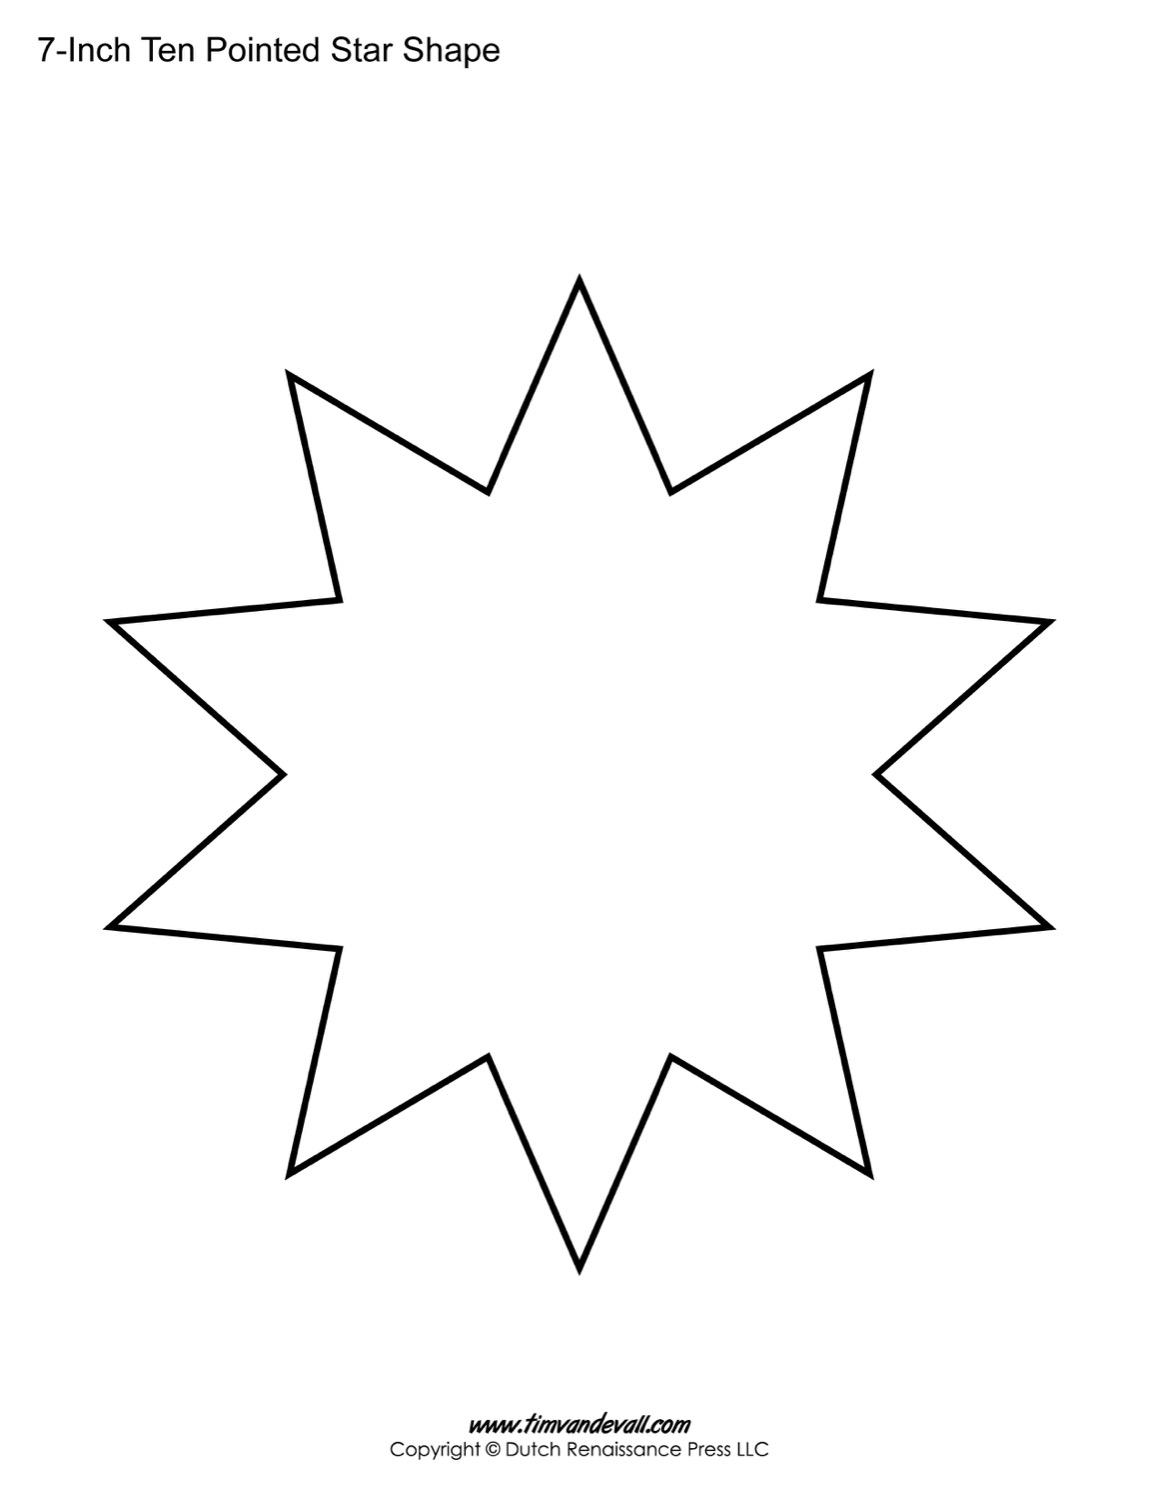 1159x1500 Blank Ten Pointed Star Shapes Printable Star Template For Art Crafts